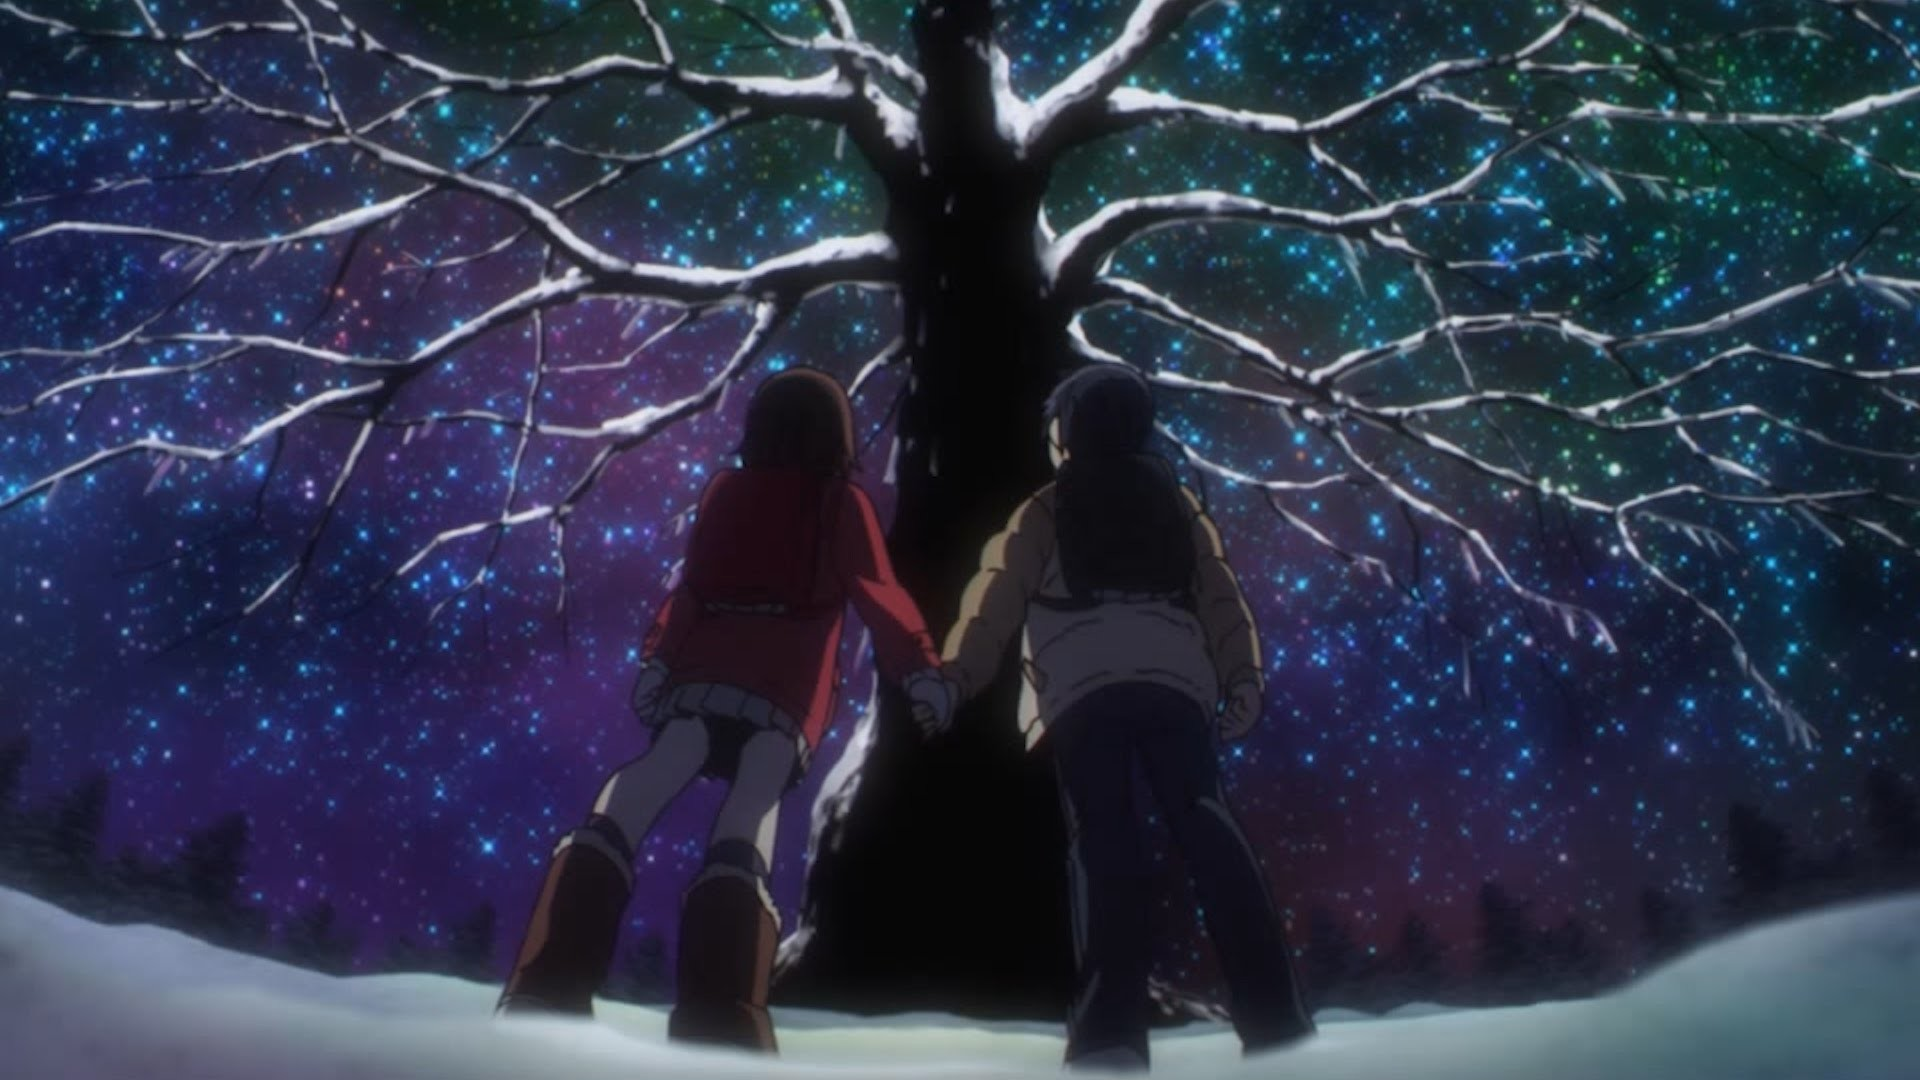 Erased Anime wallpapers - HD wallpaper Collections ...